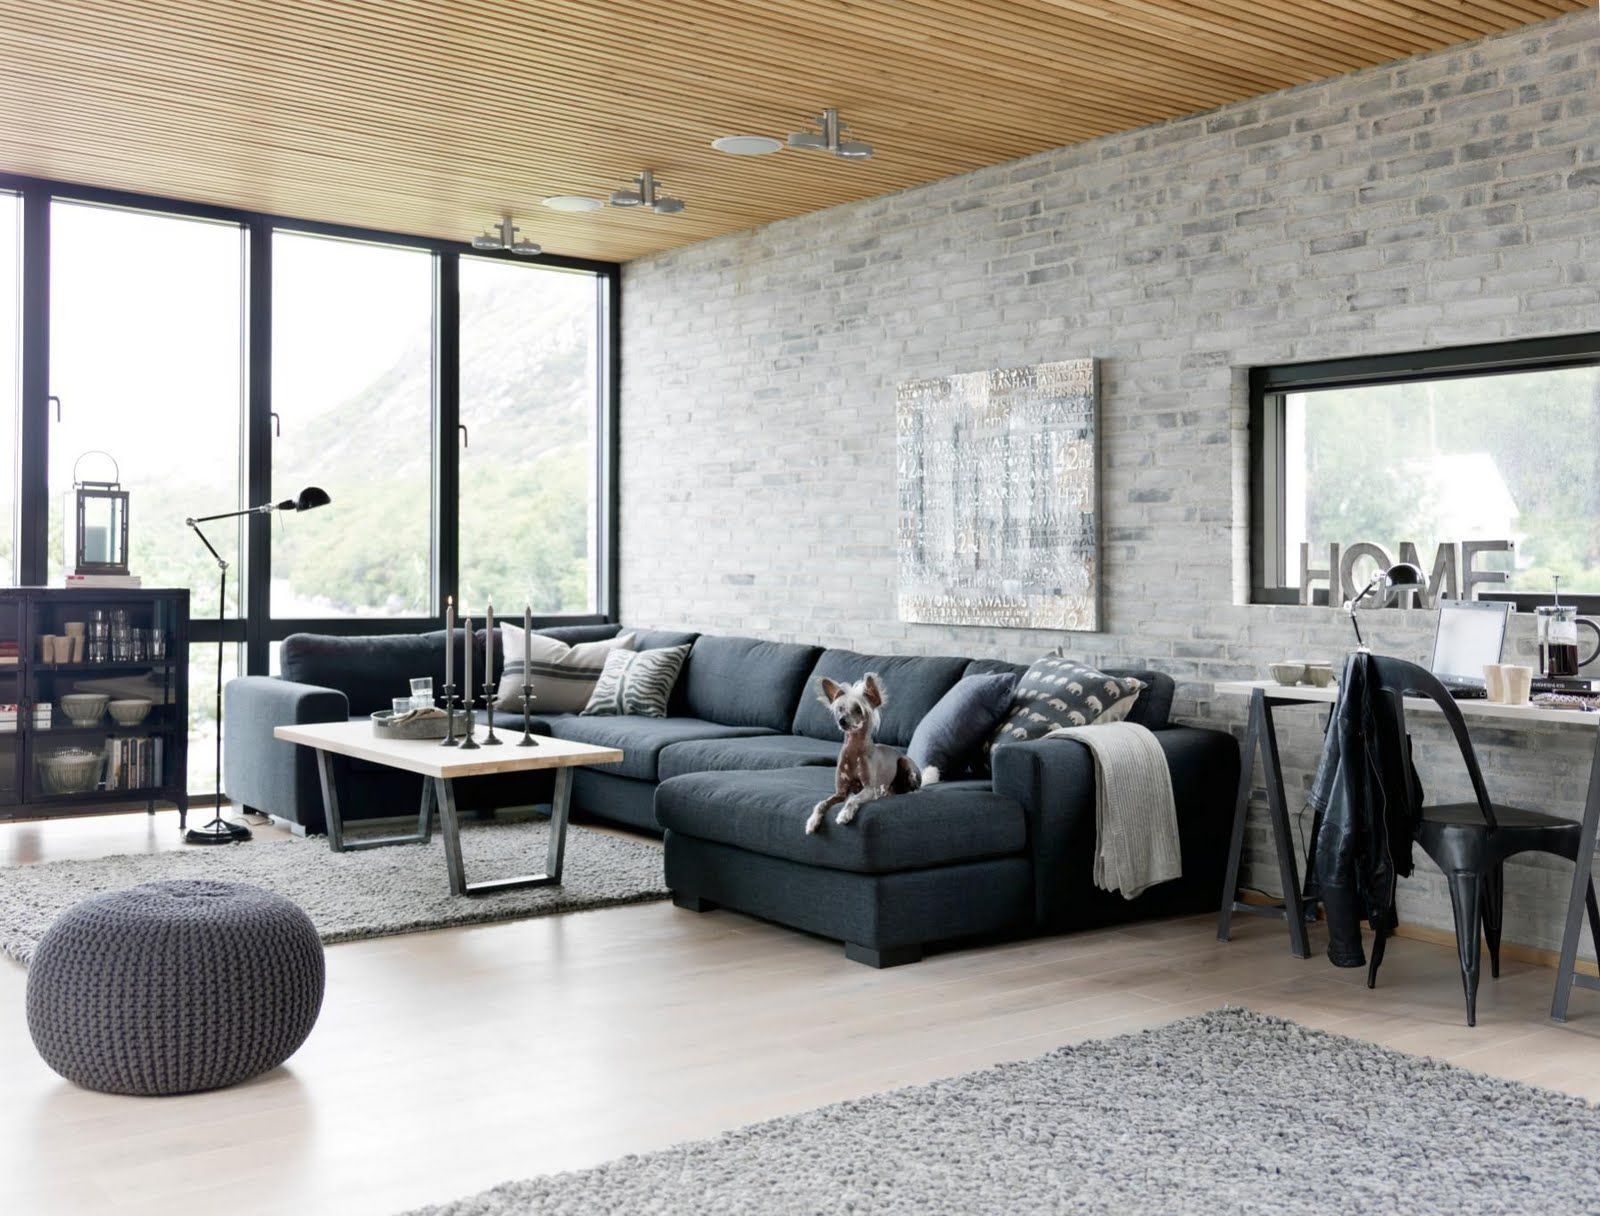 Laurel U0026 Wolf Explains: Modern Vs Industrial. Industrial Living RoomsModern  ...